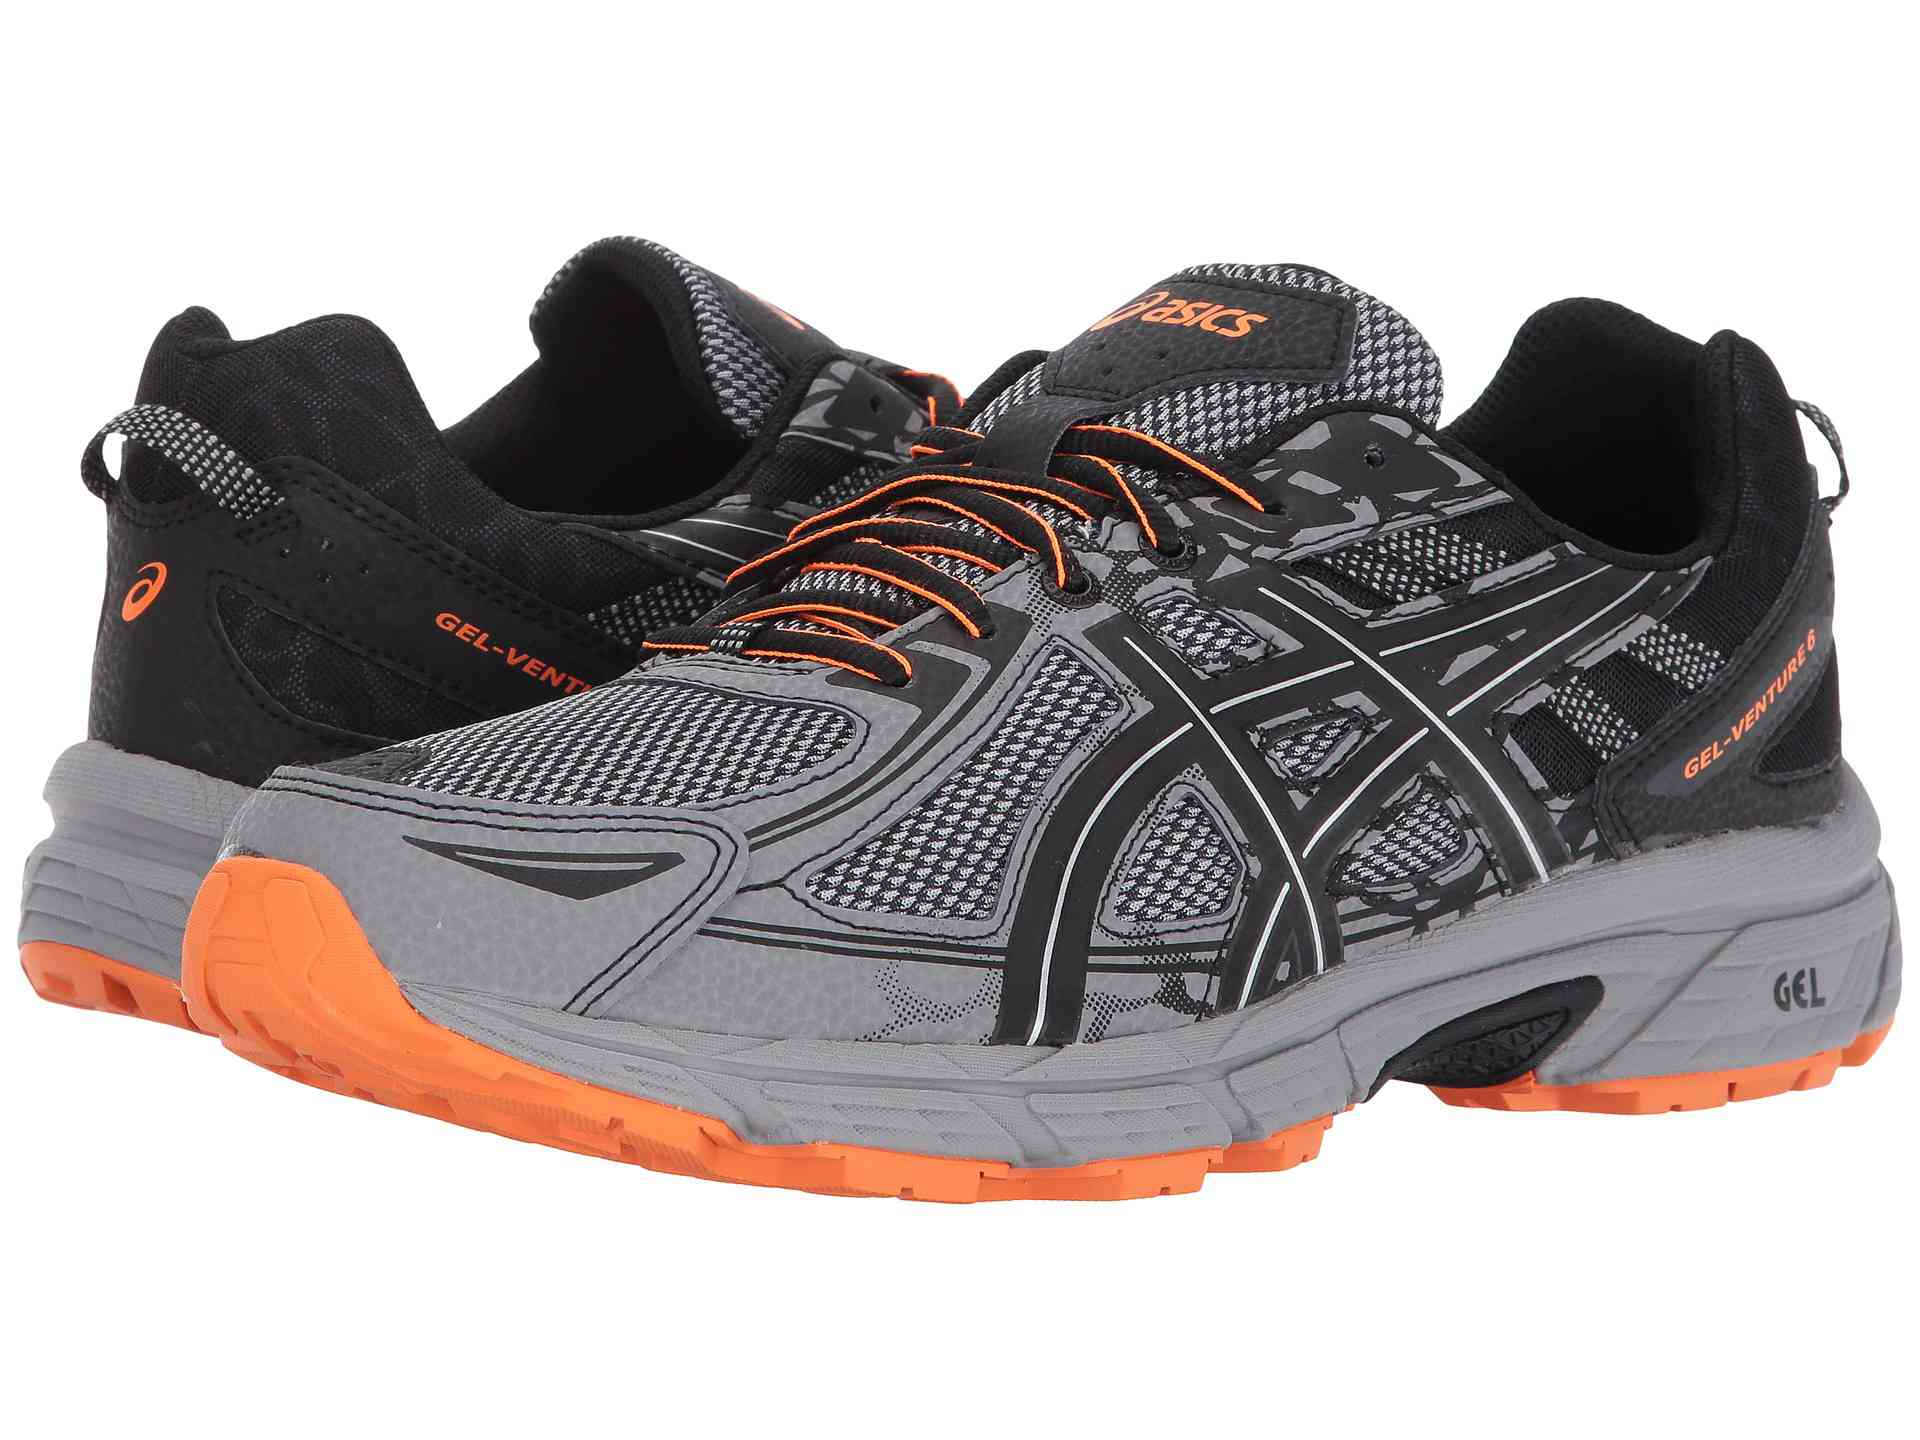 922745e2c0eb Best for Trail Running  ASICS Men s GEL Venture Running Shoes